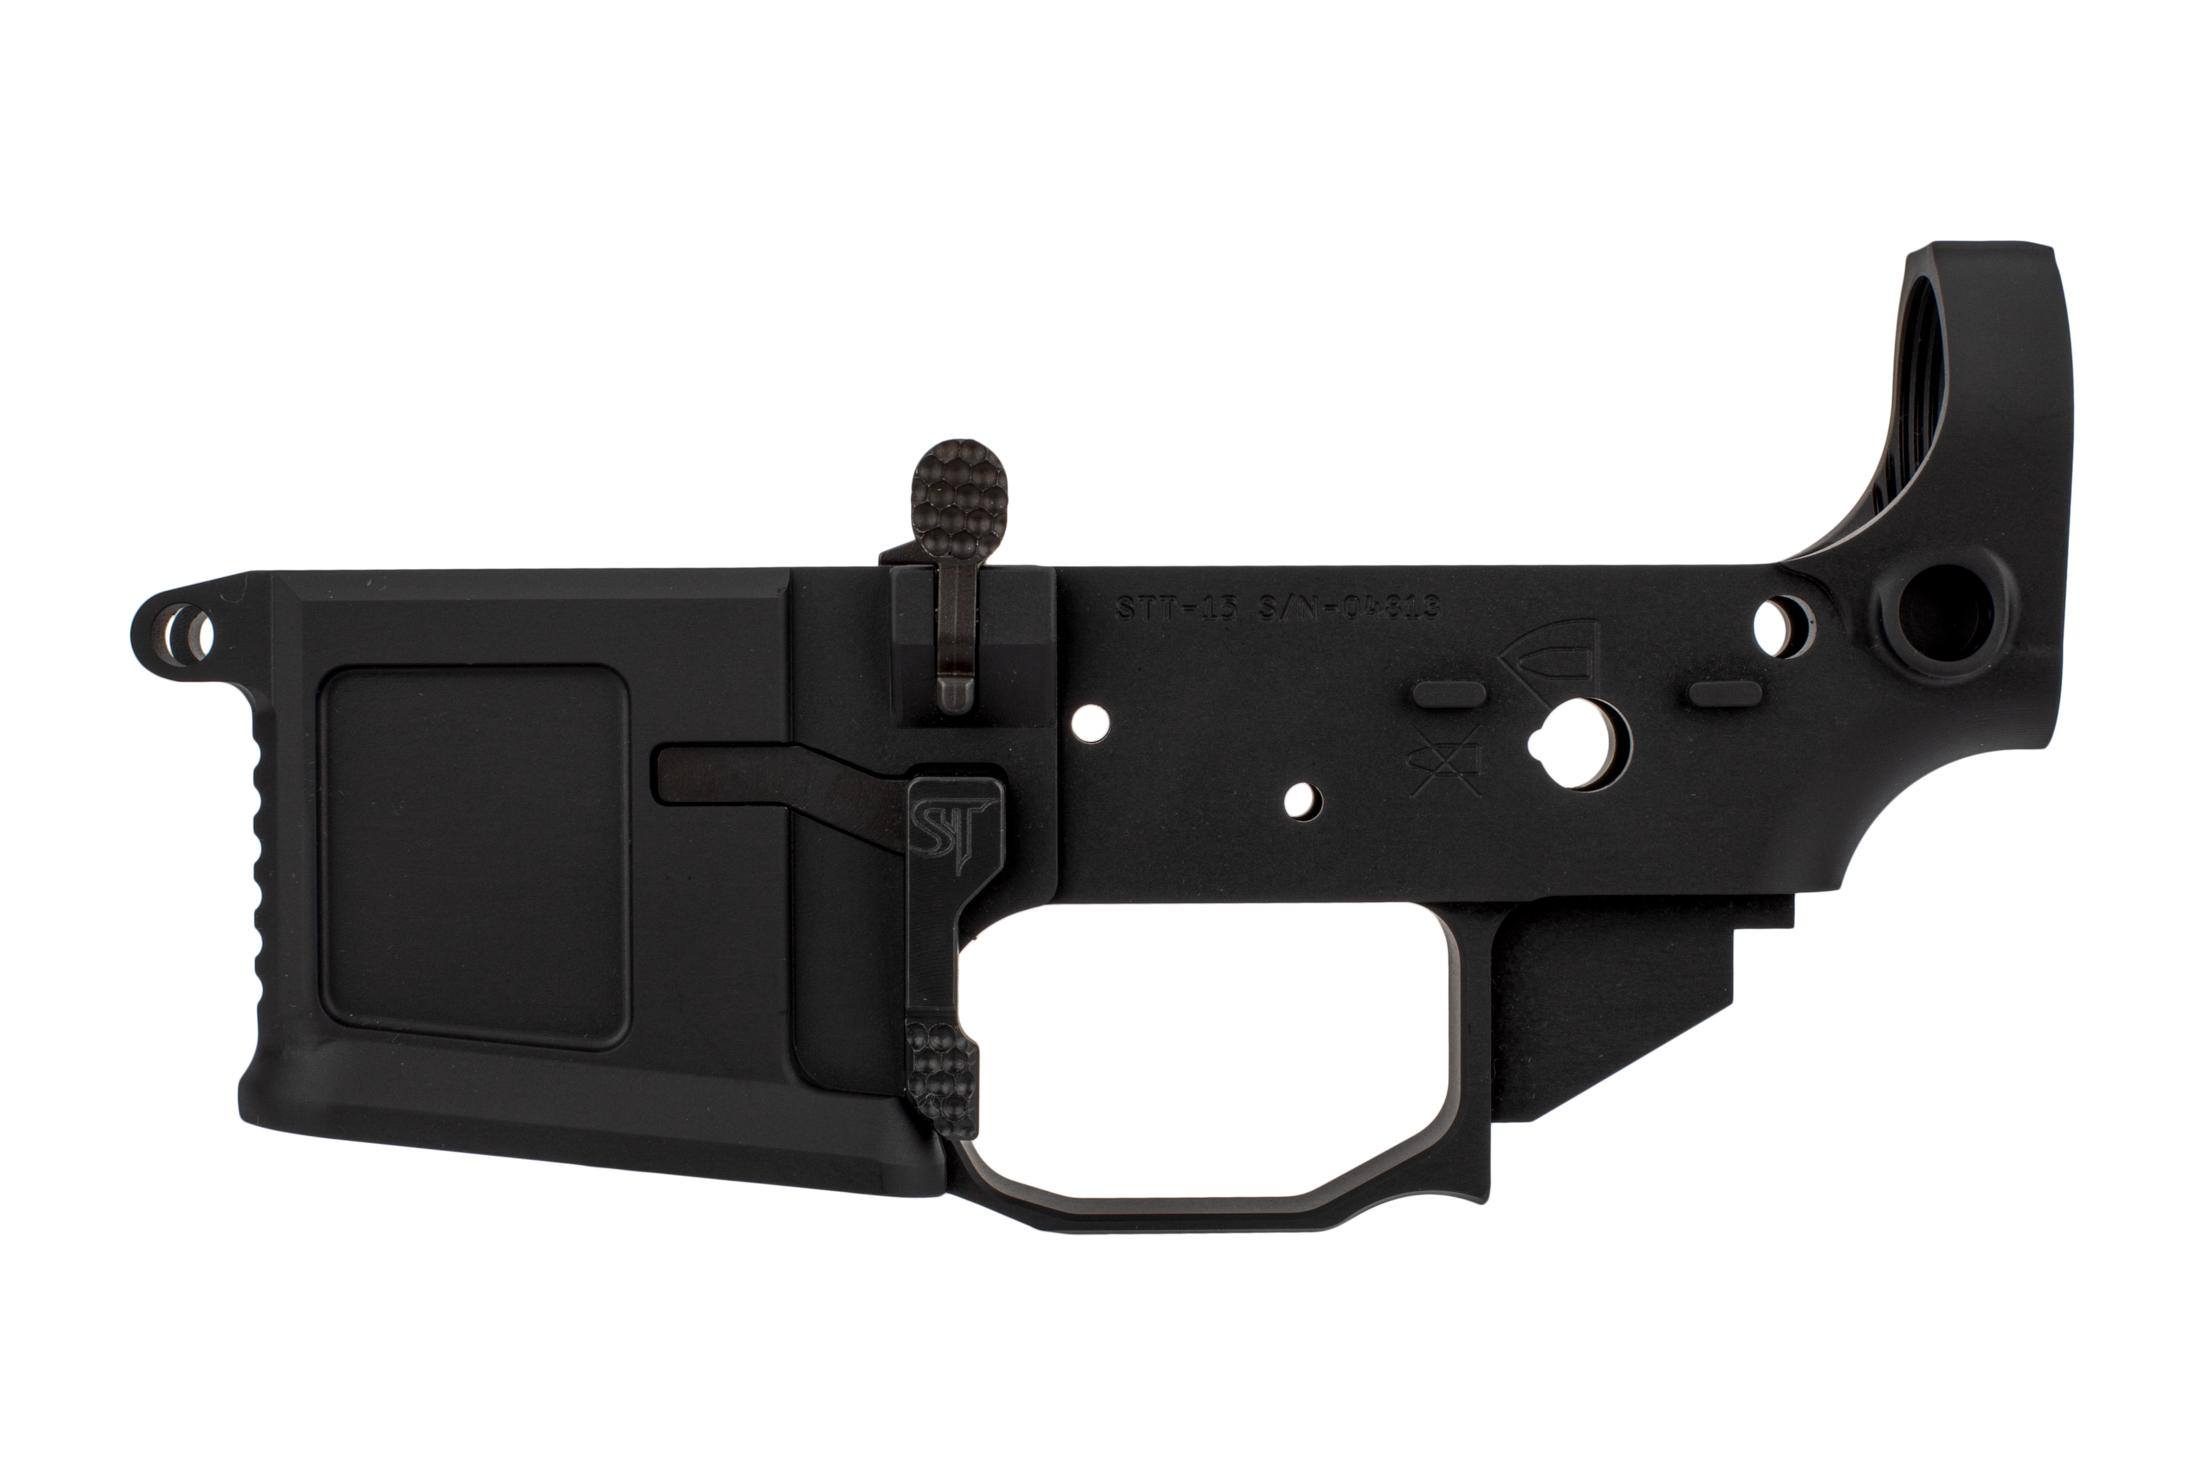 San Tan Tactical STT-15 Stripped Lower Receiver - Ambidextrous